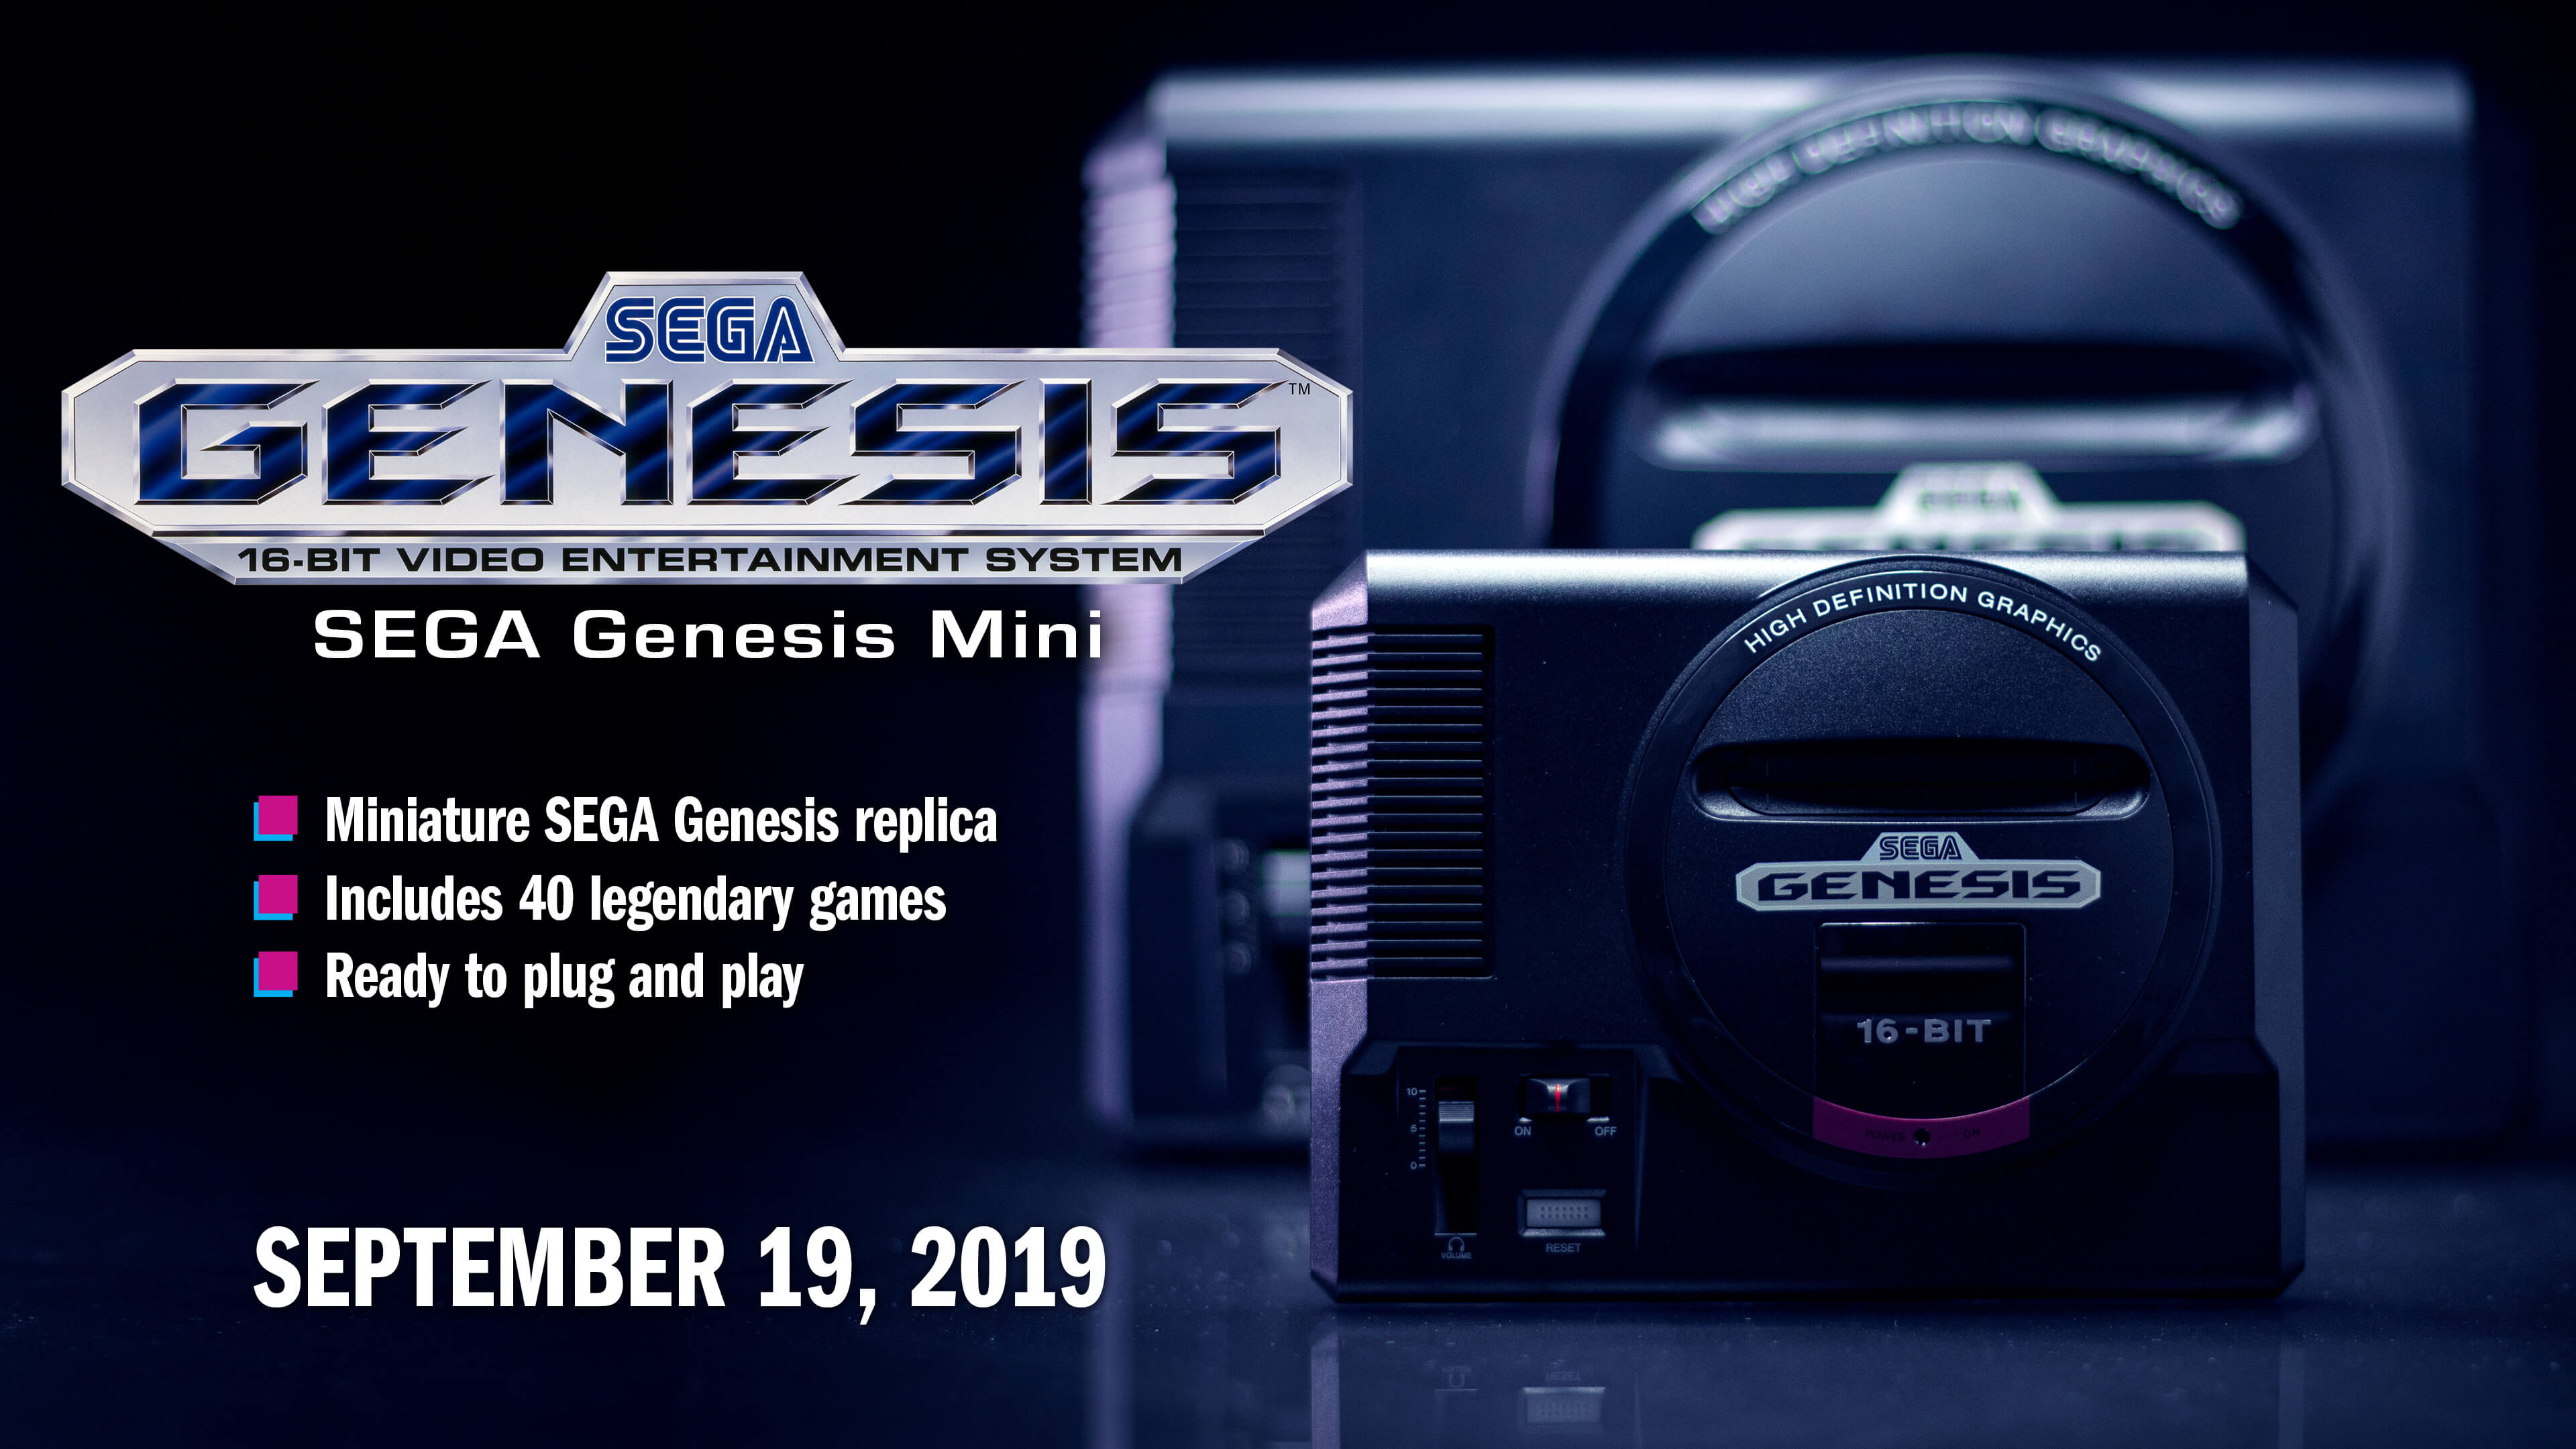 The Sega Genesis Mini is scheduled to release on September 19, 2019.